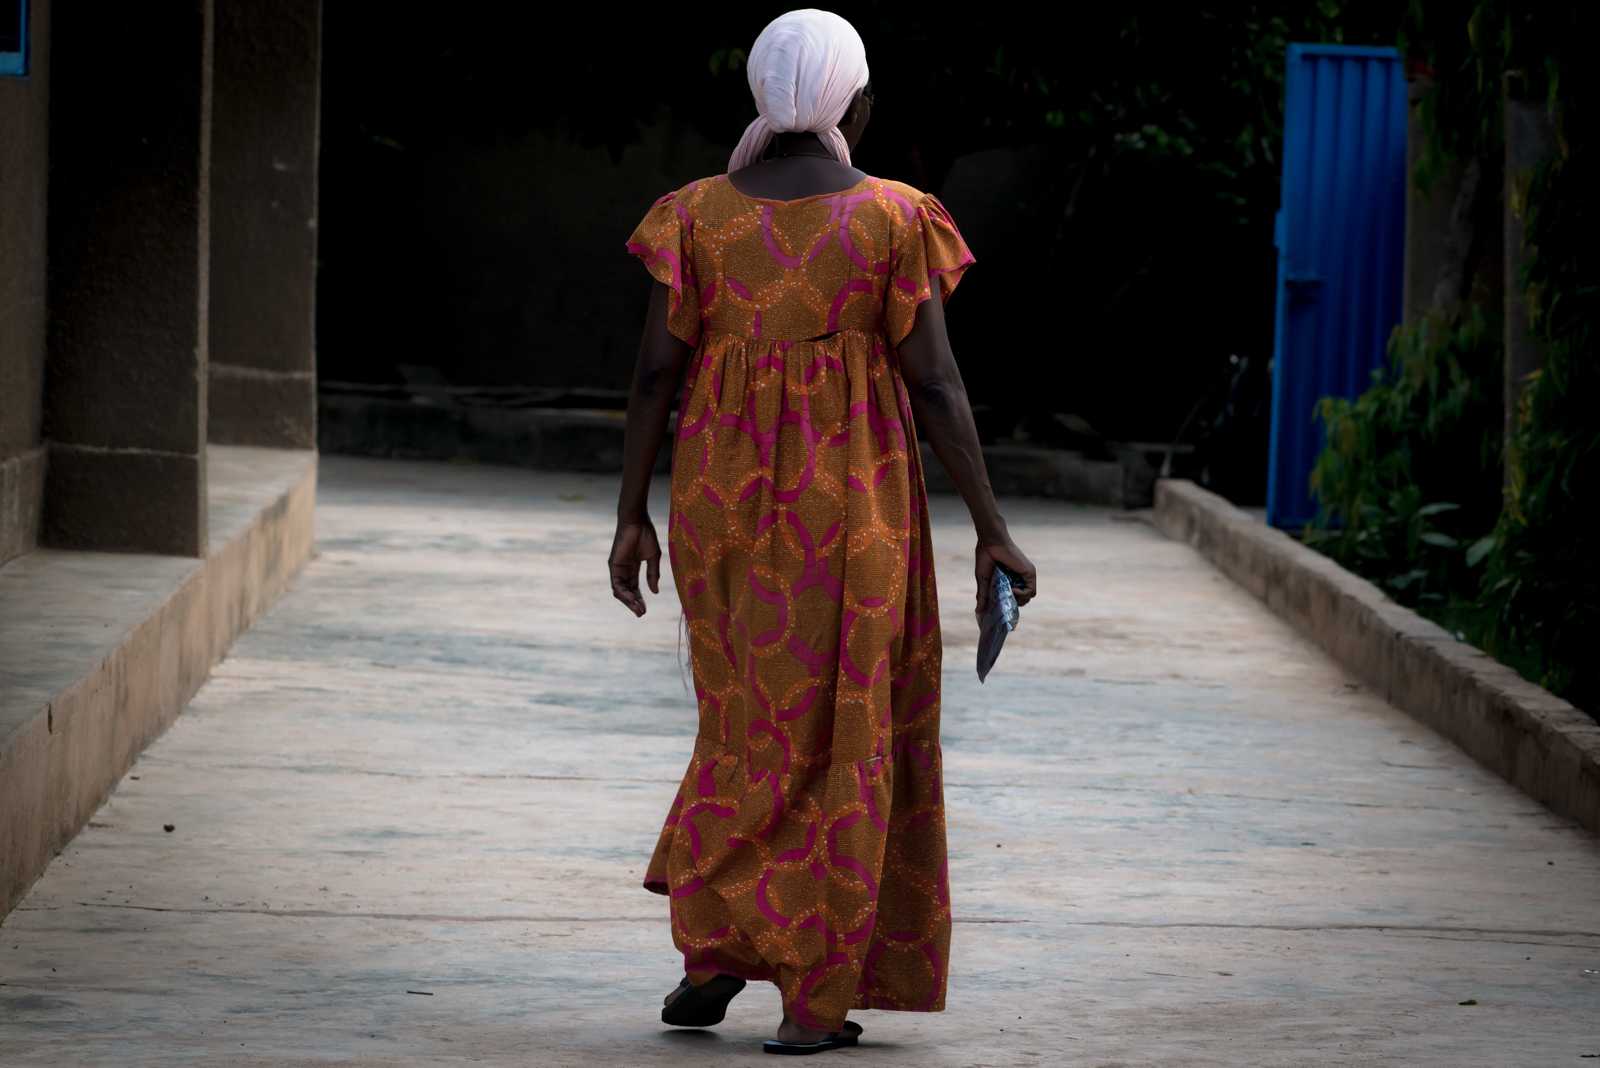 Mama Laadi, the most selfless woman I know, on her way to attend to her children.